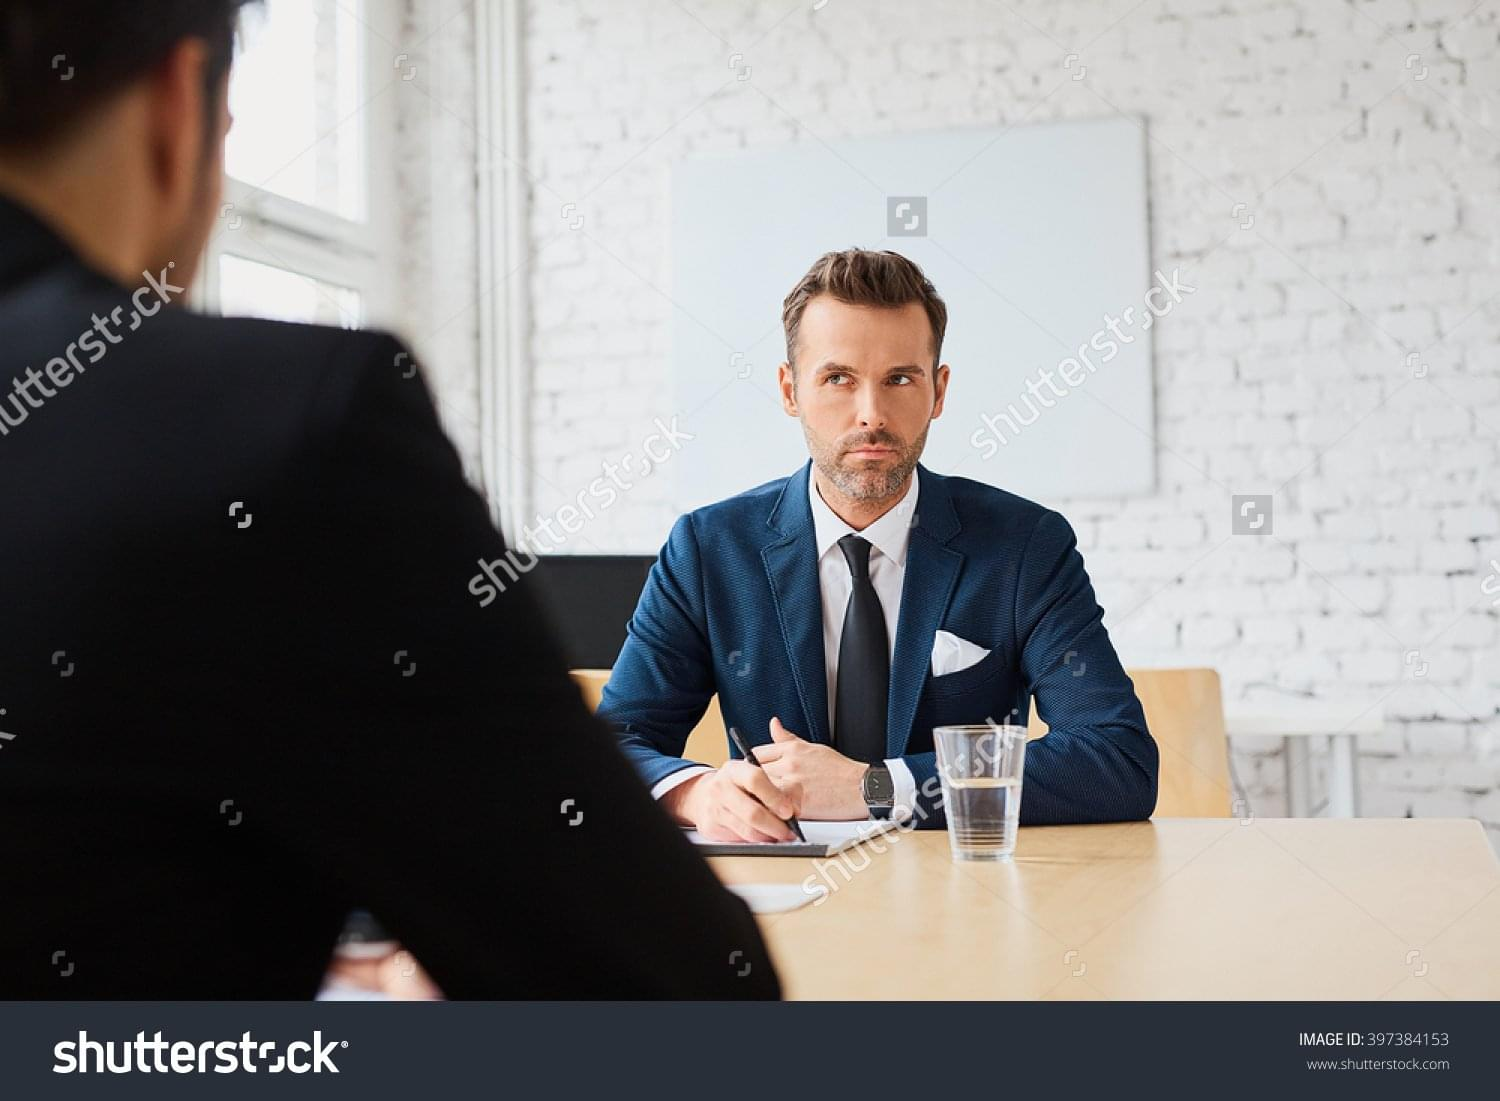 stock-photo-job-interview-businessman-listen-to-candidate-answers-397384153